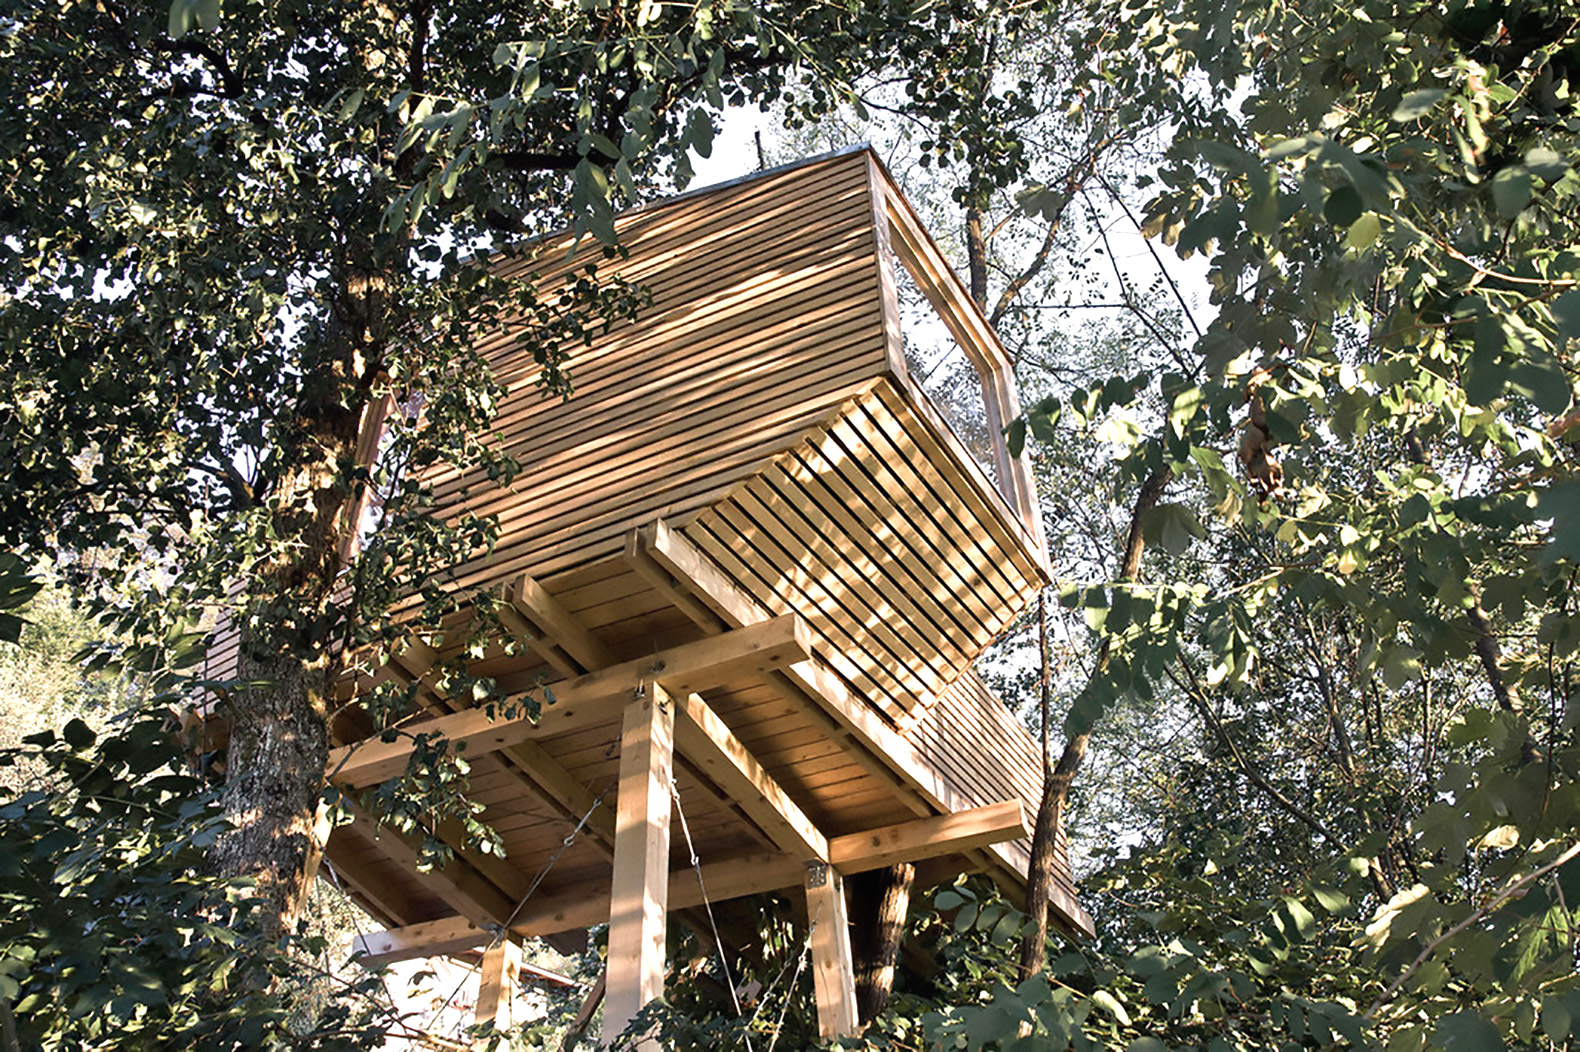 Tiny Wooden Cabin On Stilts Is A Cozy Escape In The Trees Inhabitat Green Design Innovation Architecture Building